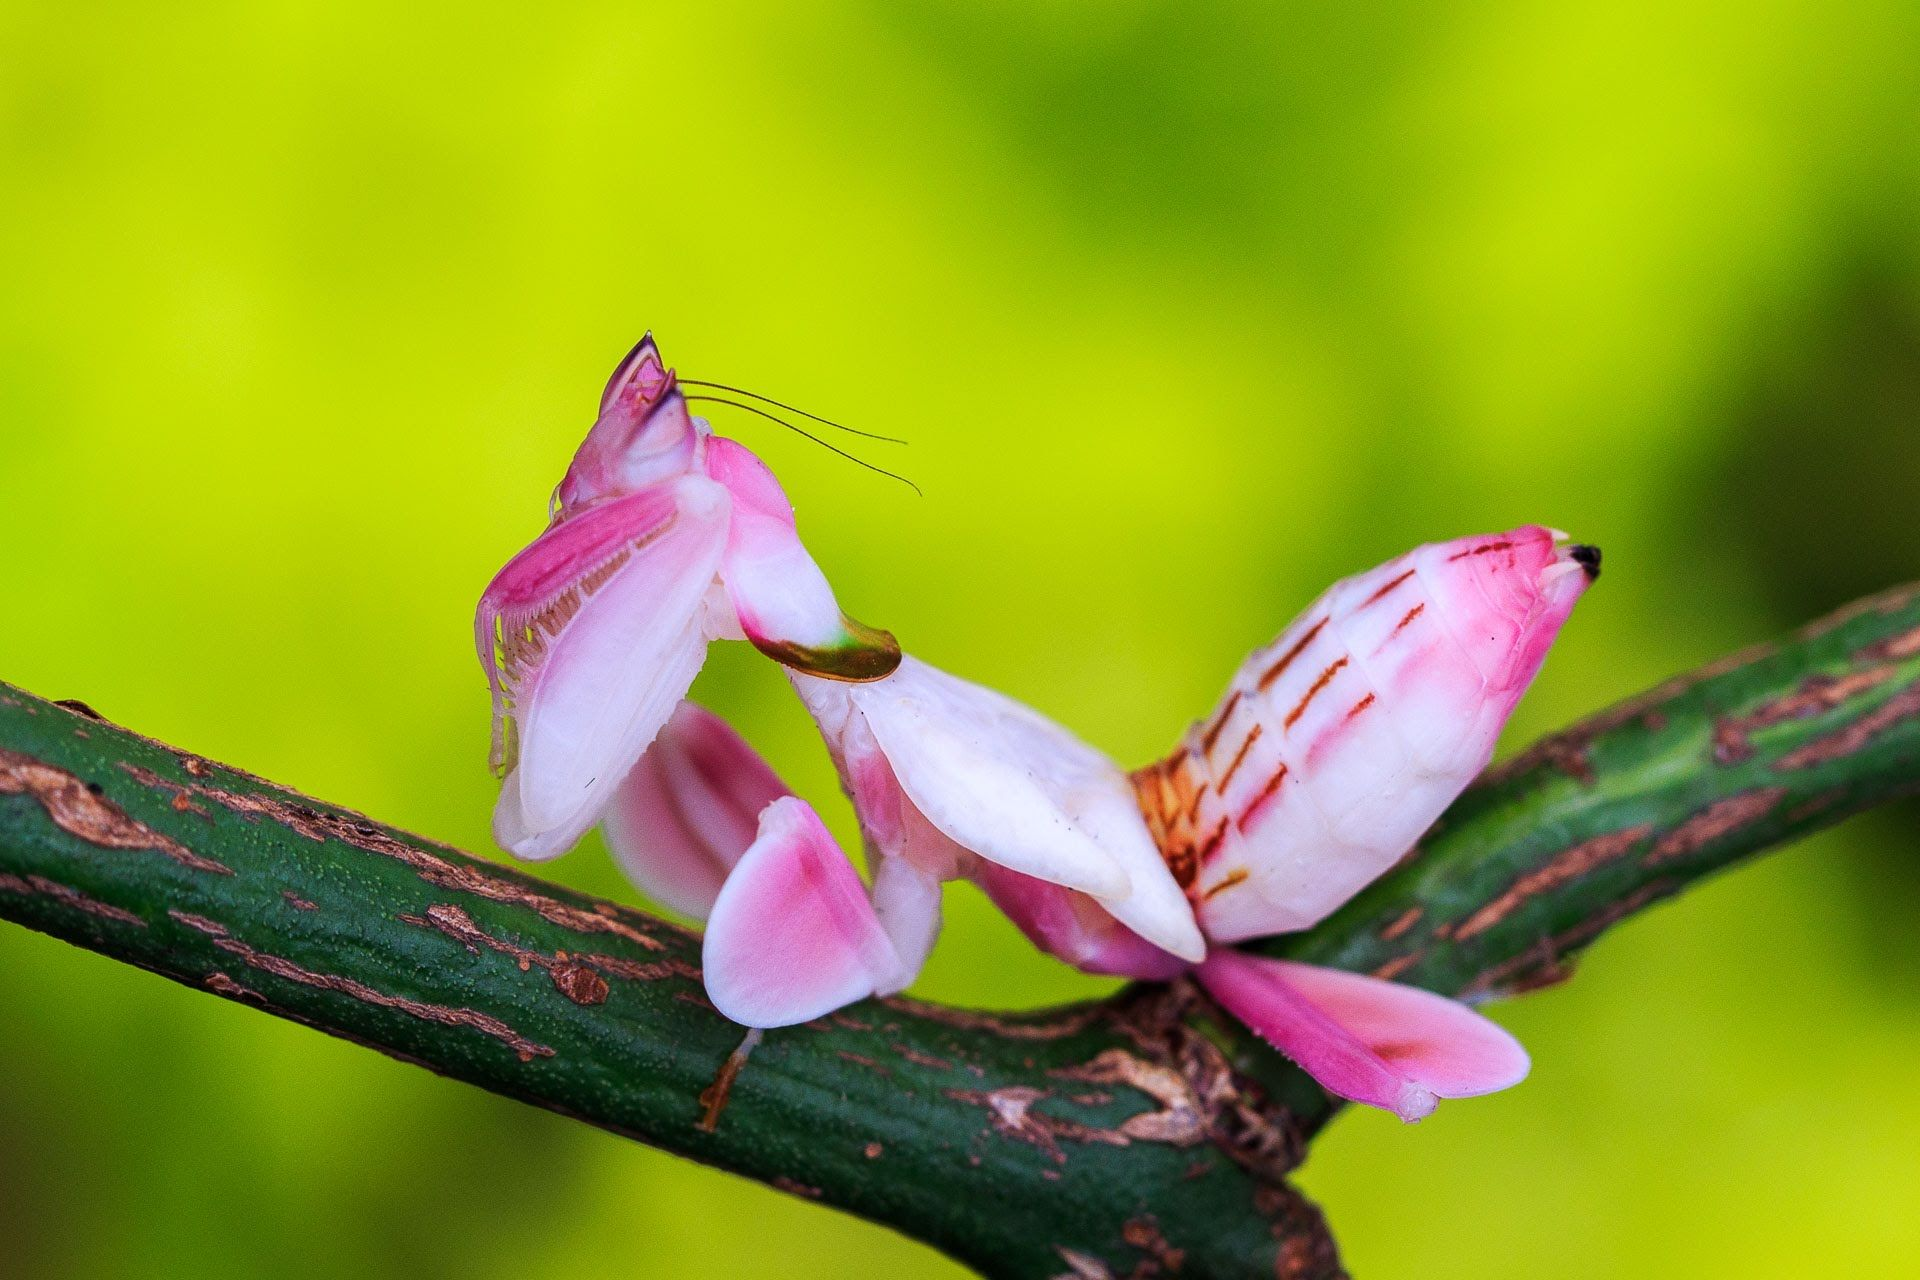 Https I Ytimg Com Vi Hdy9gzz4hqe Maxresdefault Jpg Orchid Mantis Orchids Wildlife Photography